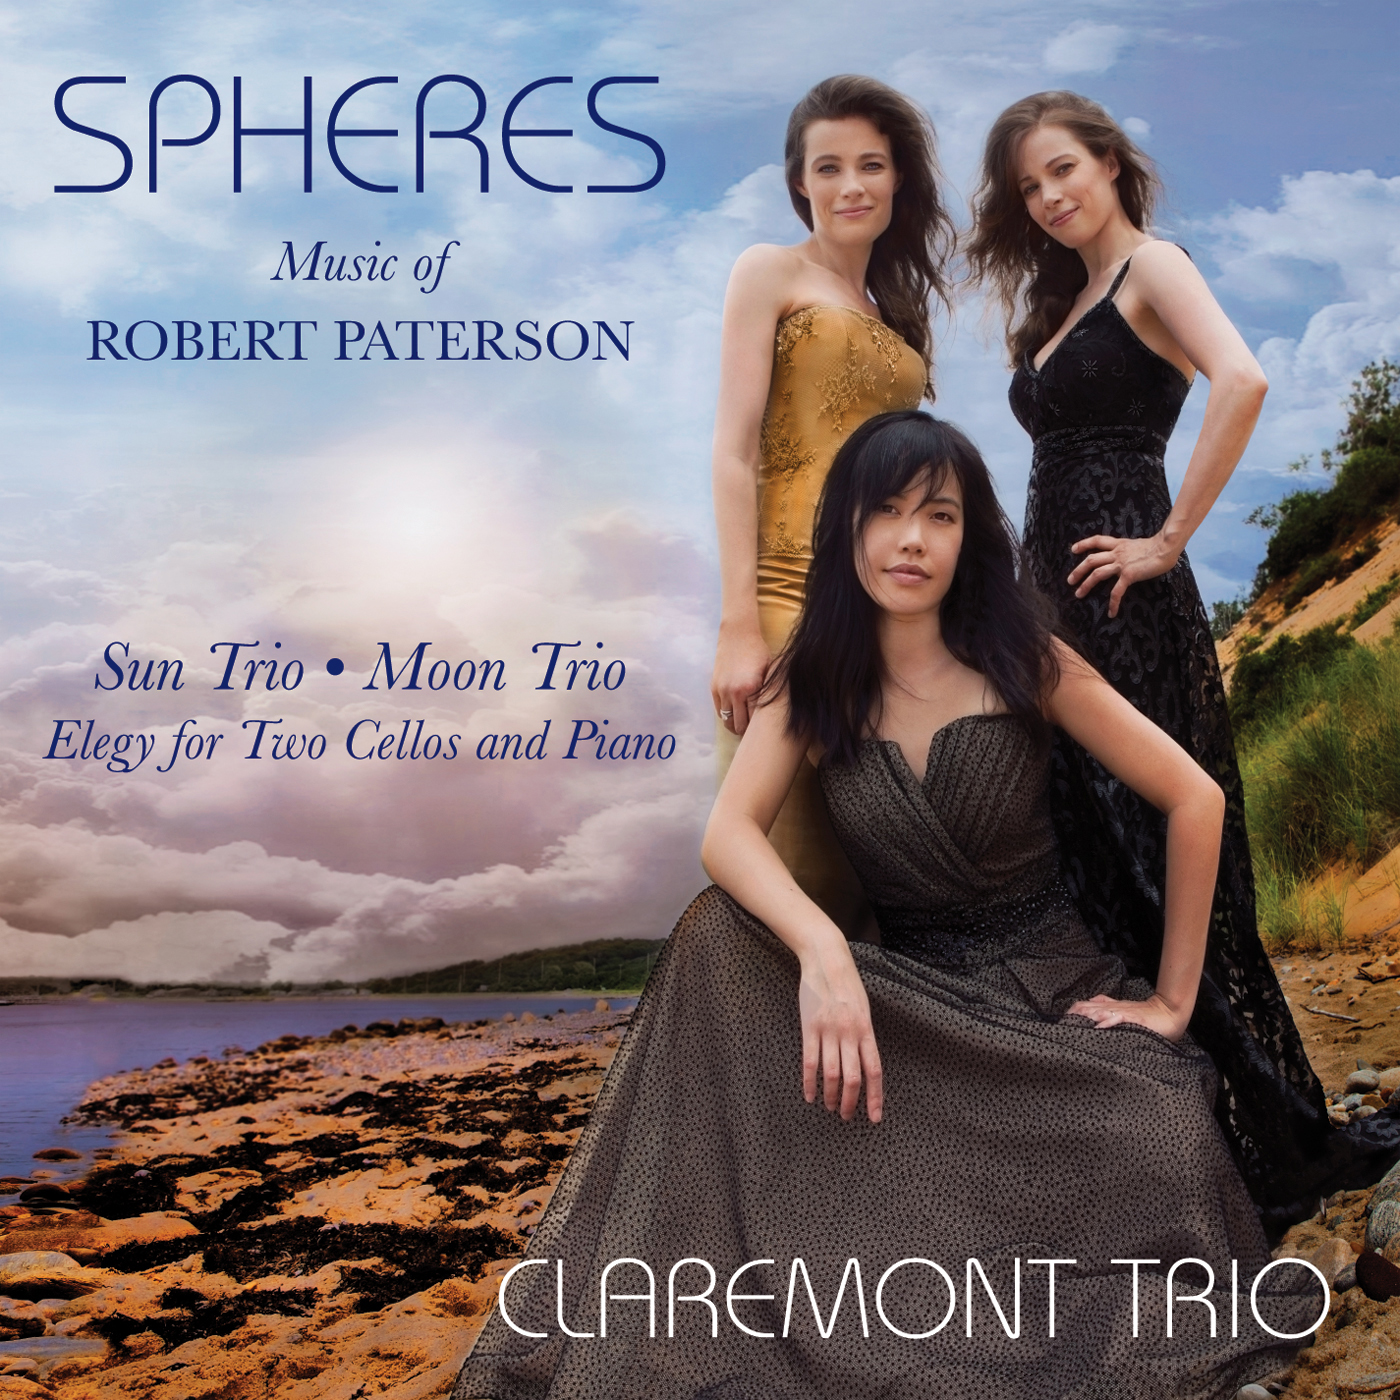 Claremont Trio_Spheres_Robert-Paterson_Frontcover_Digital.jpg